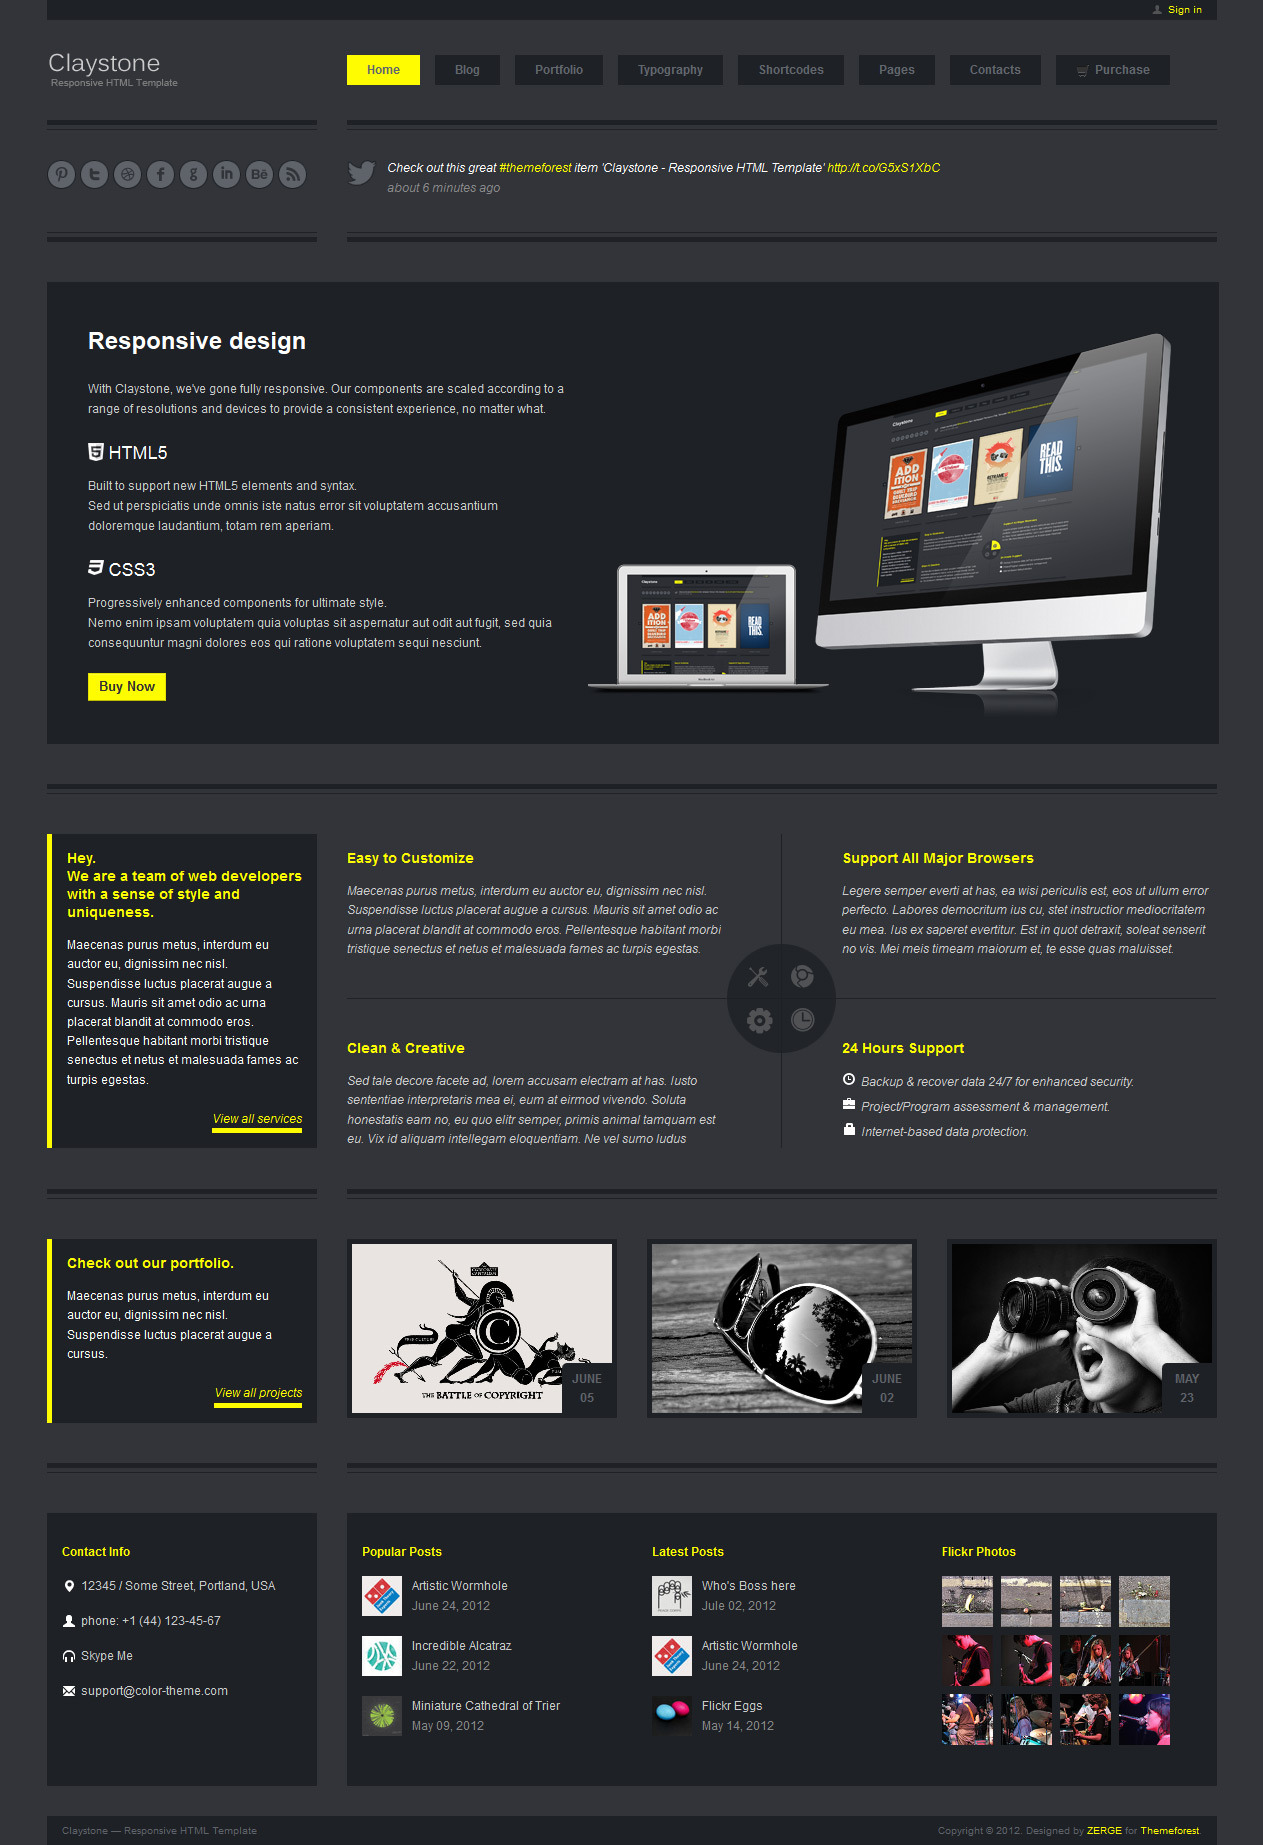 Claystone - Responsive HTML Template - 02 Home Flex Dark